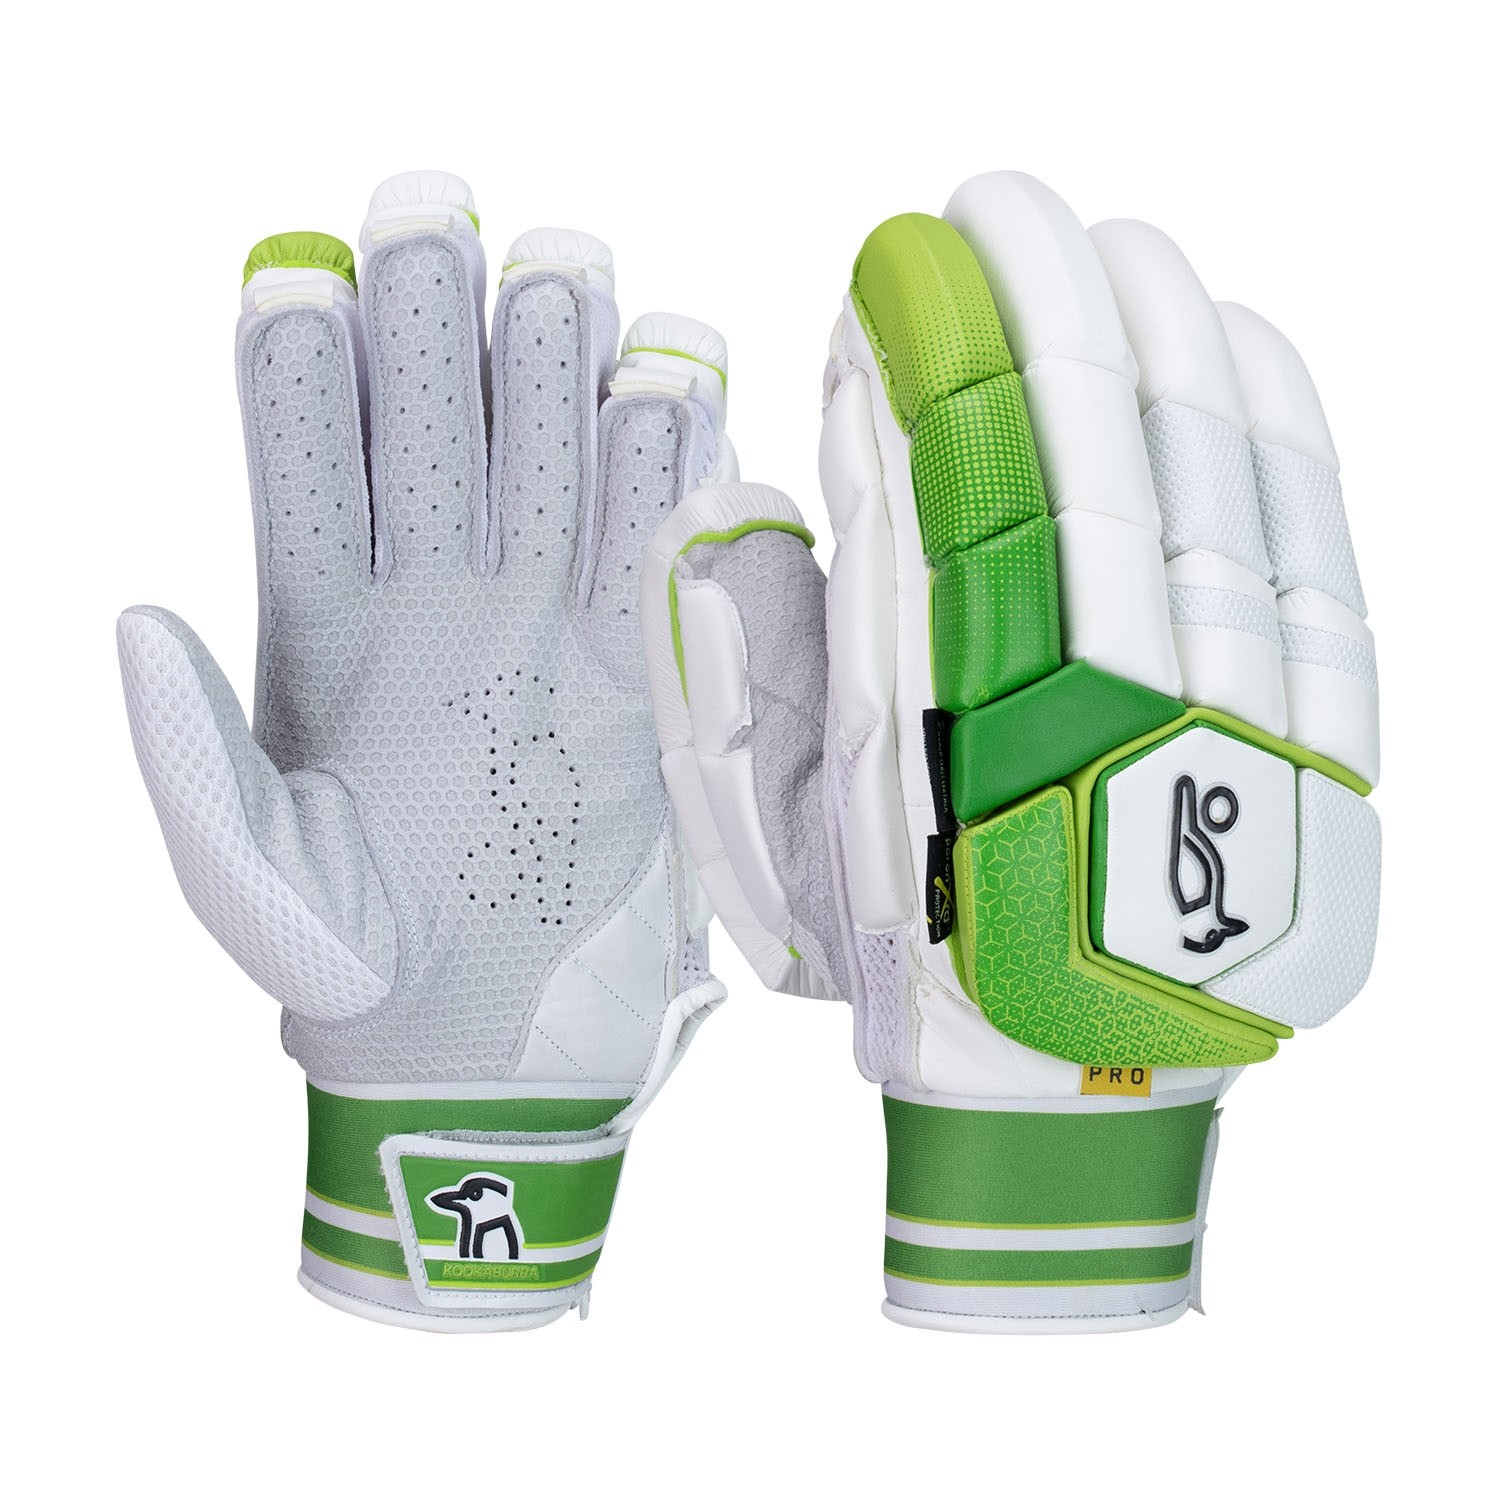 2021 Kookaburra Kahuna Pro Batting Gloves